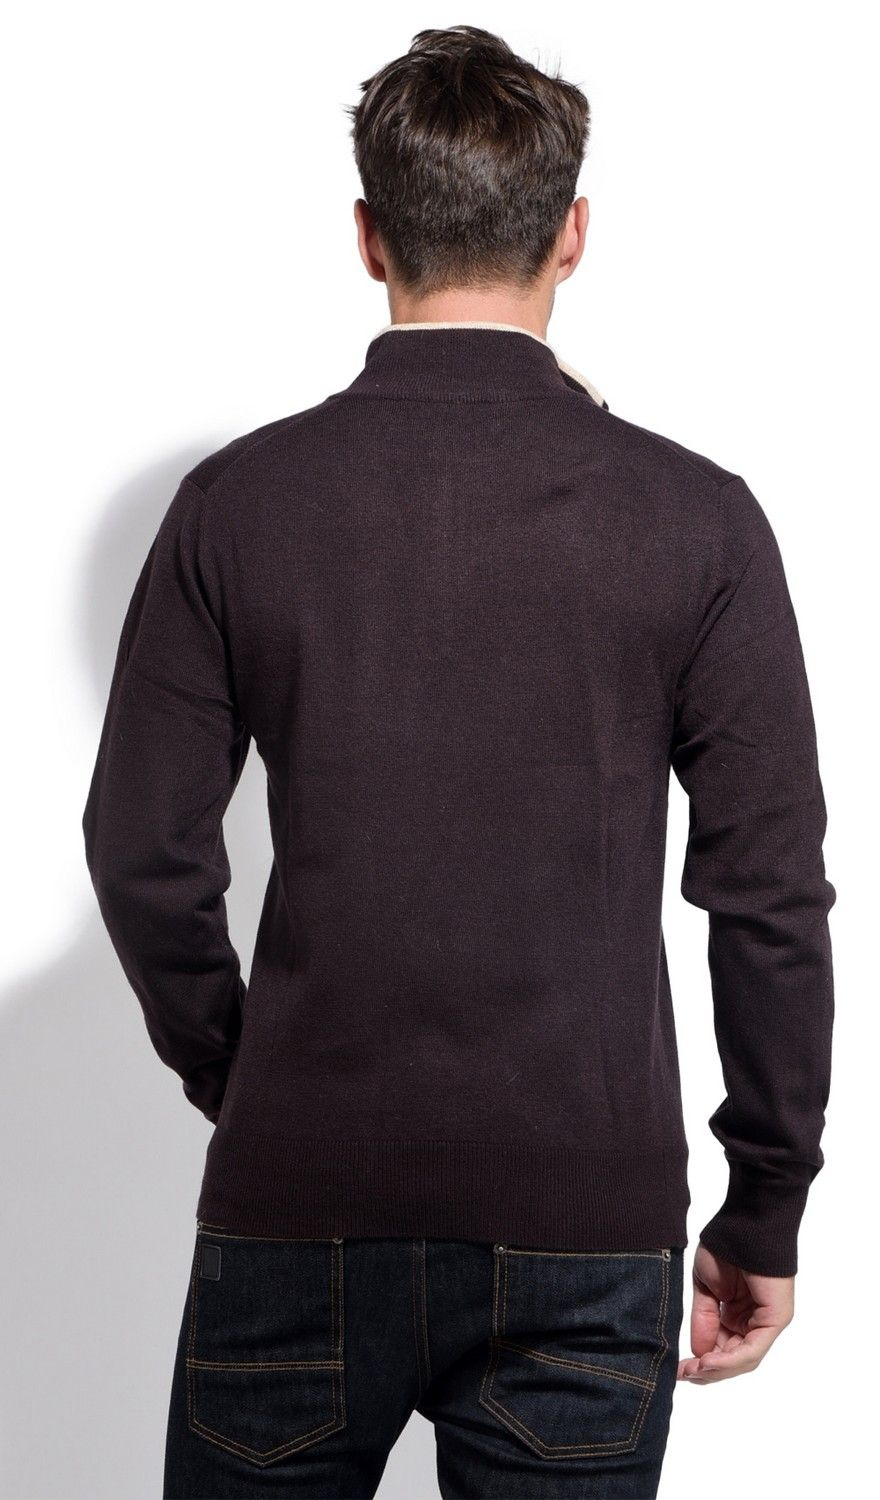 William De Faye Half Zip Sweater with Two-tone Collar in Brown